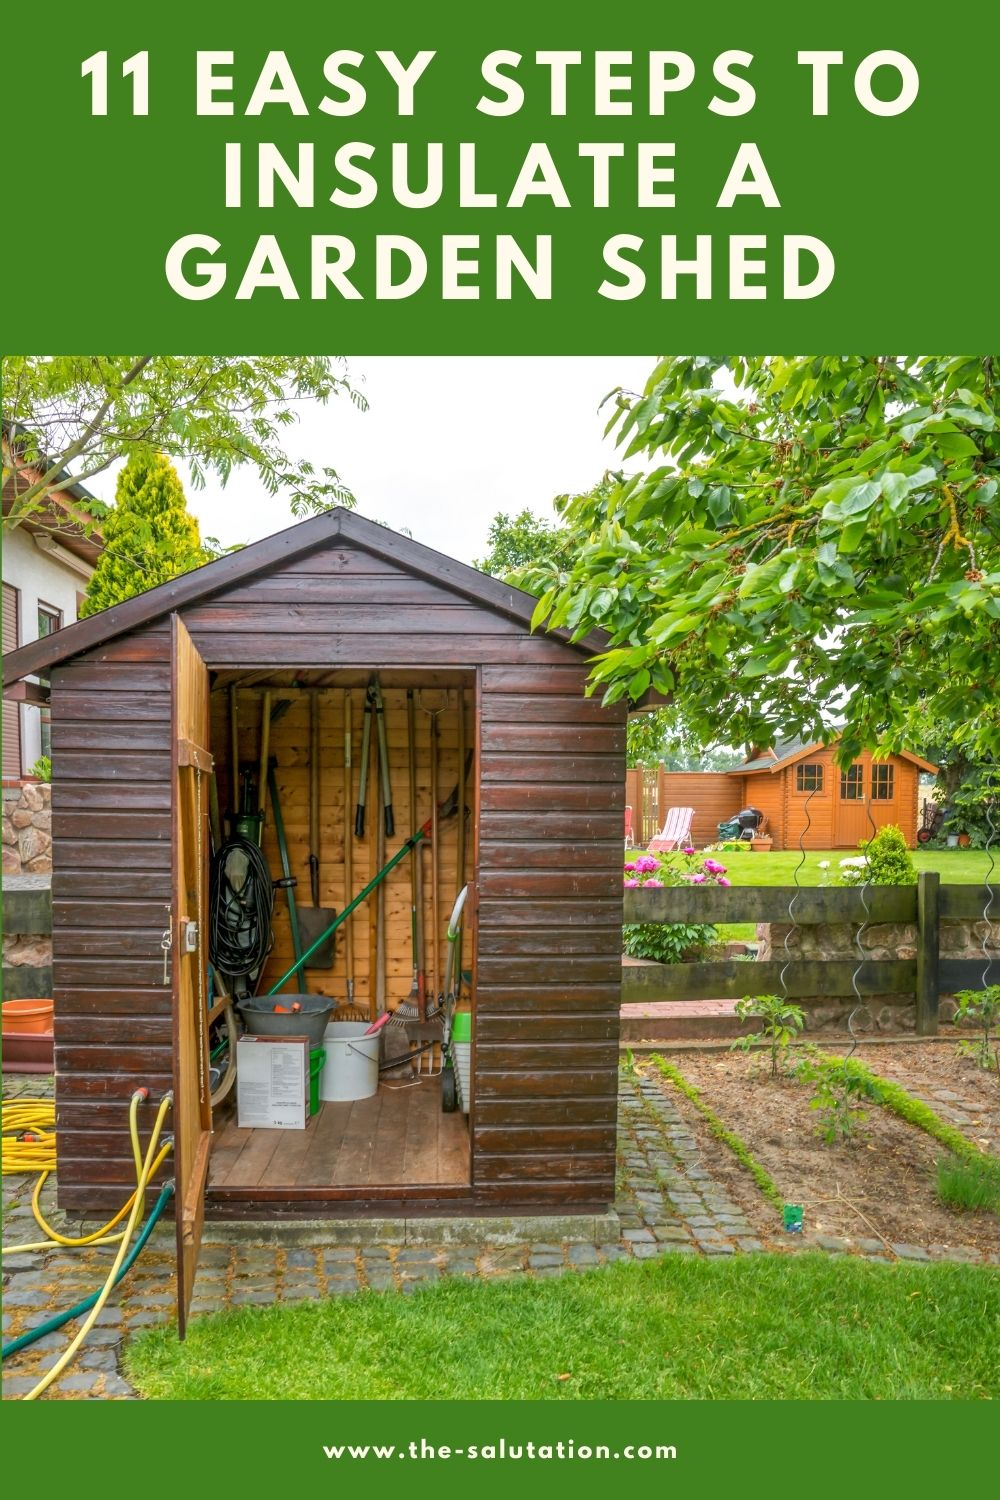 11 Easy Steps to Insulate a Garden Shed 1